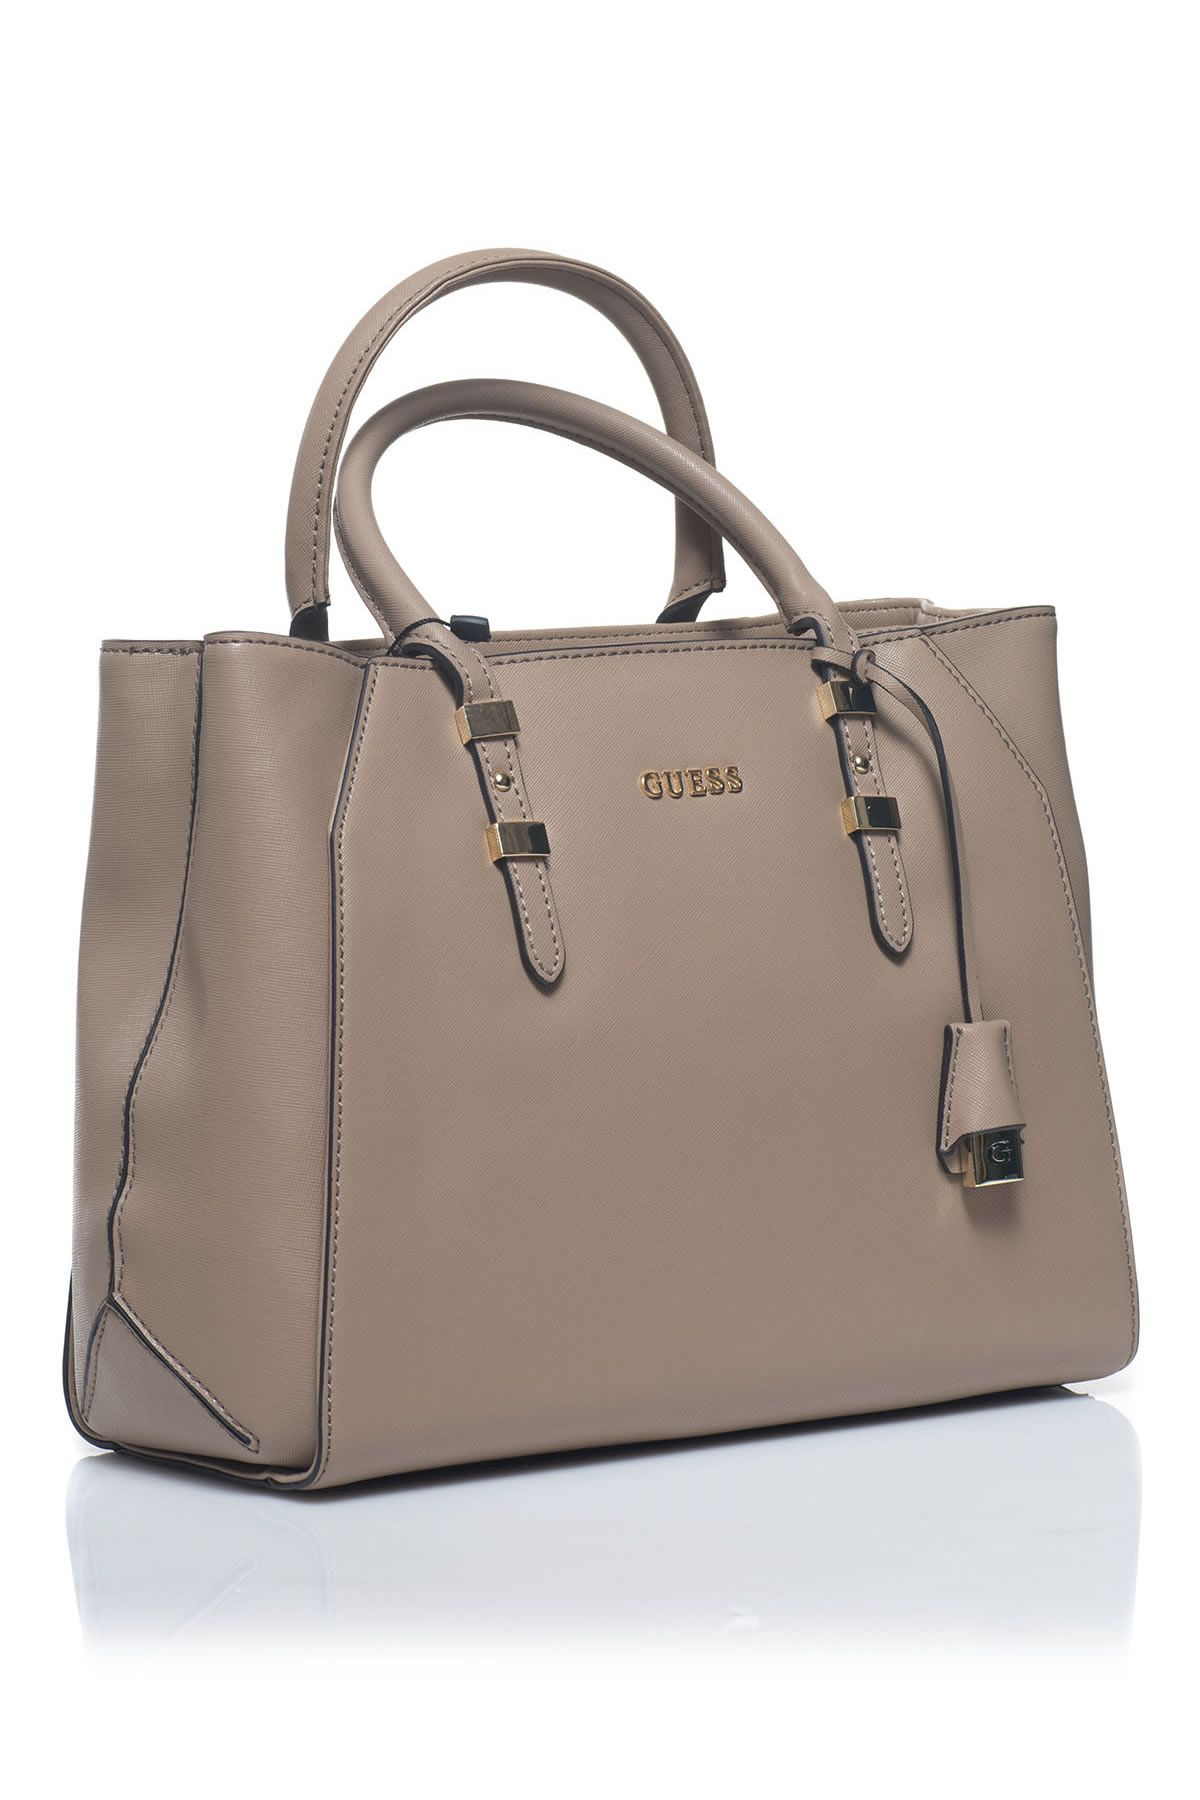 Guess | Beige Handbag | Lyst | Handbags &